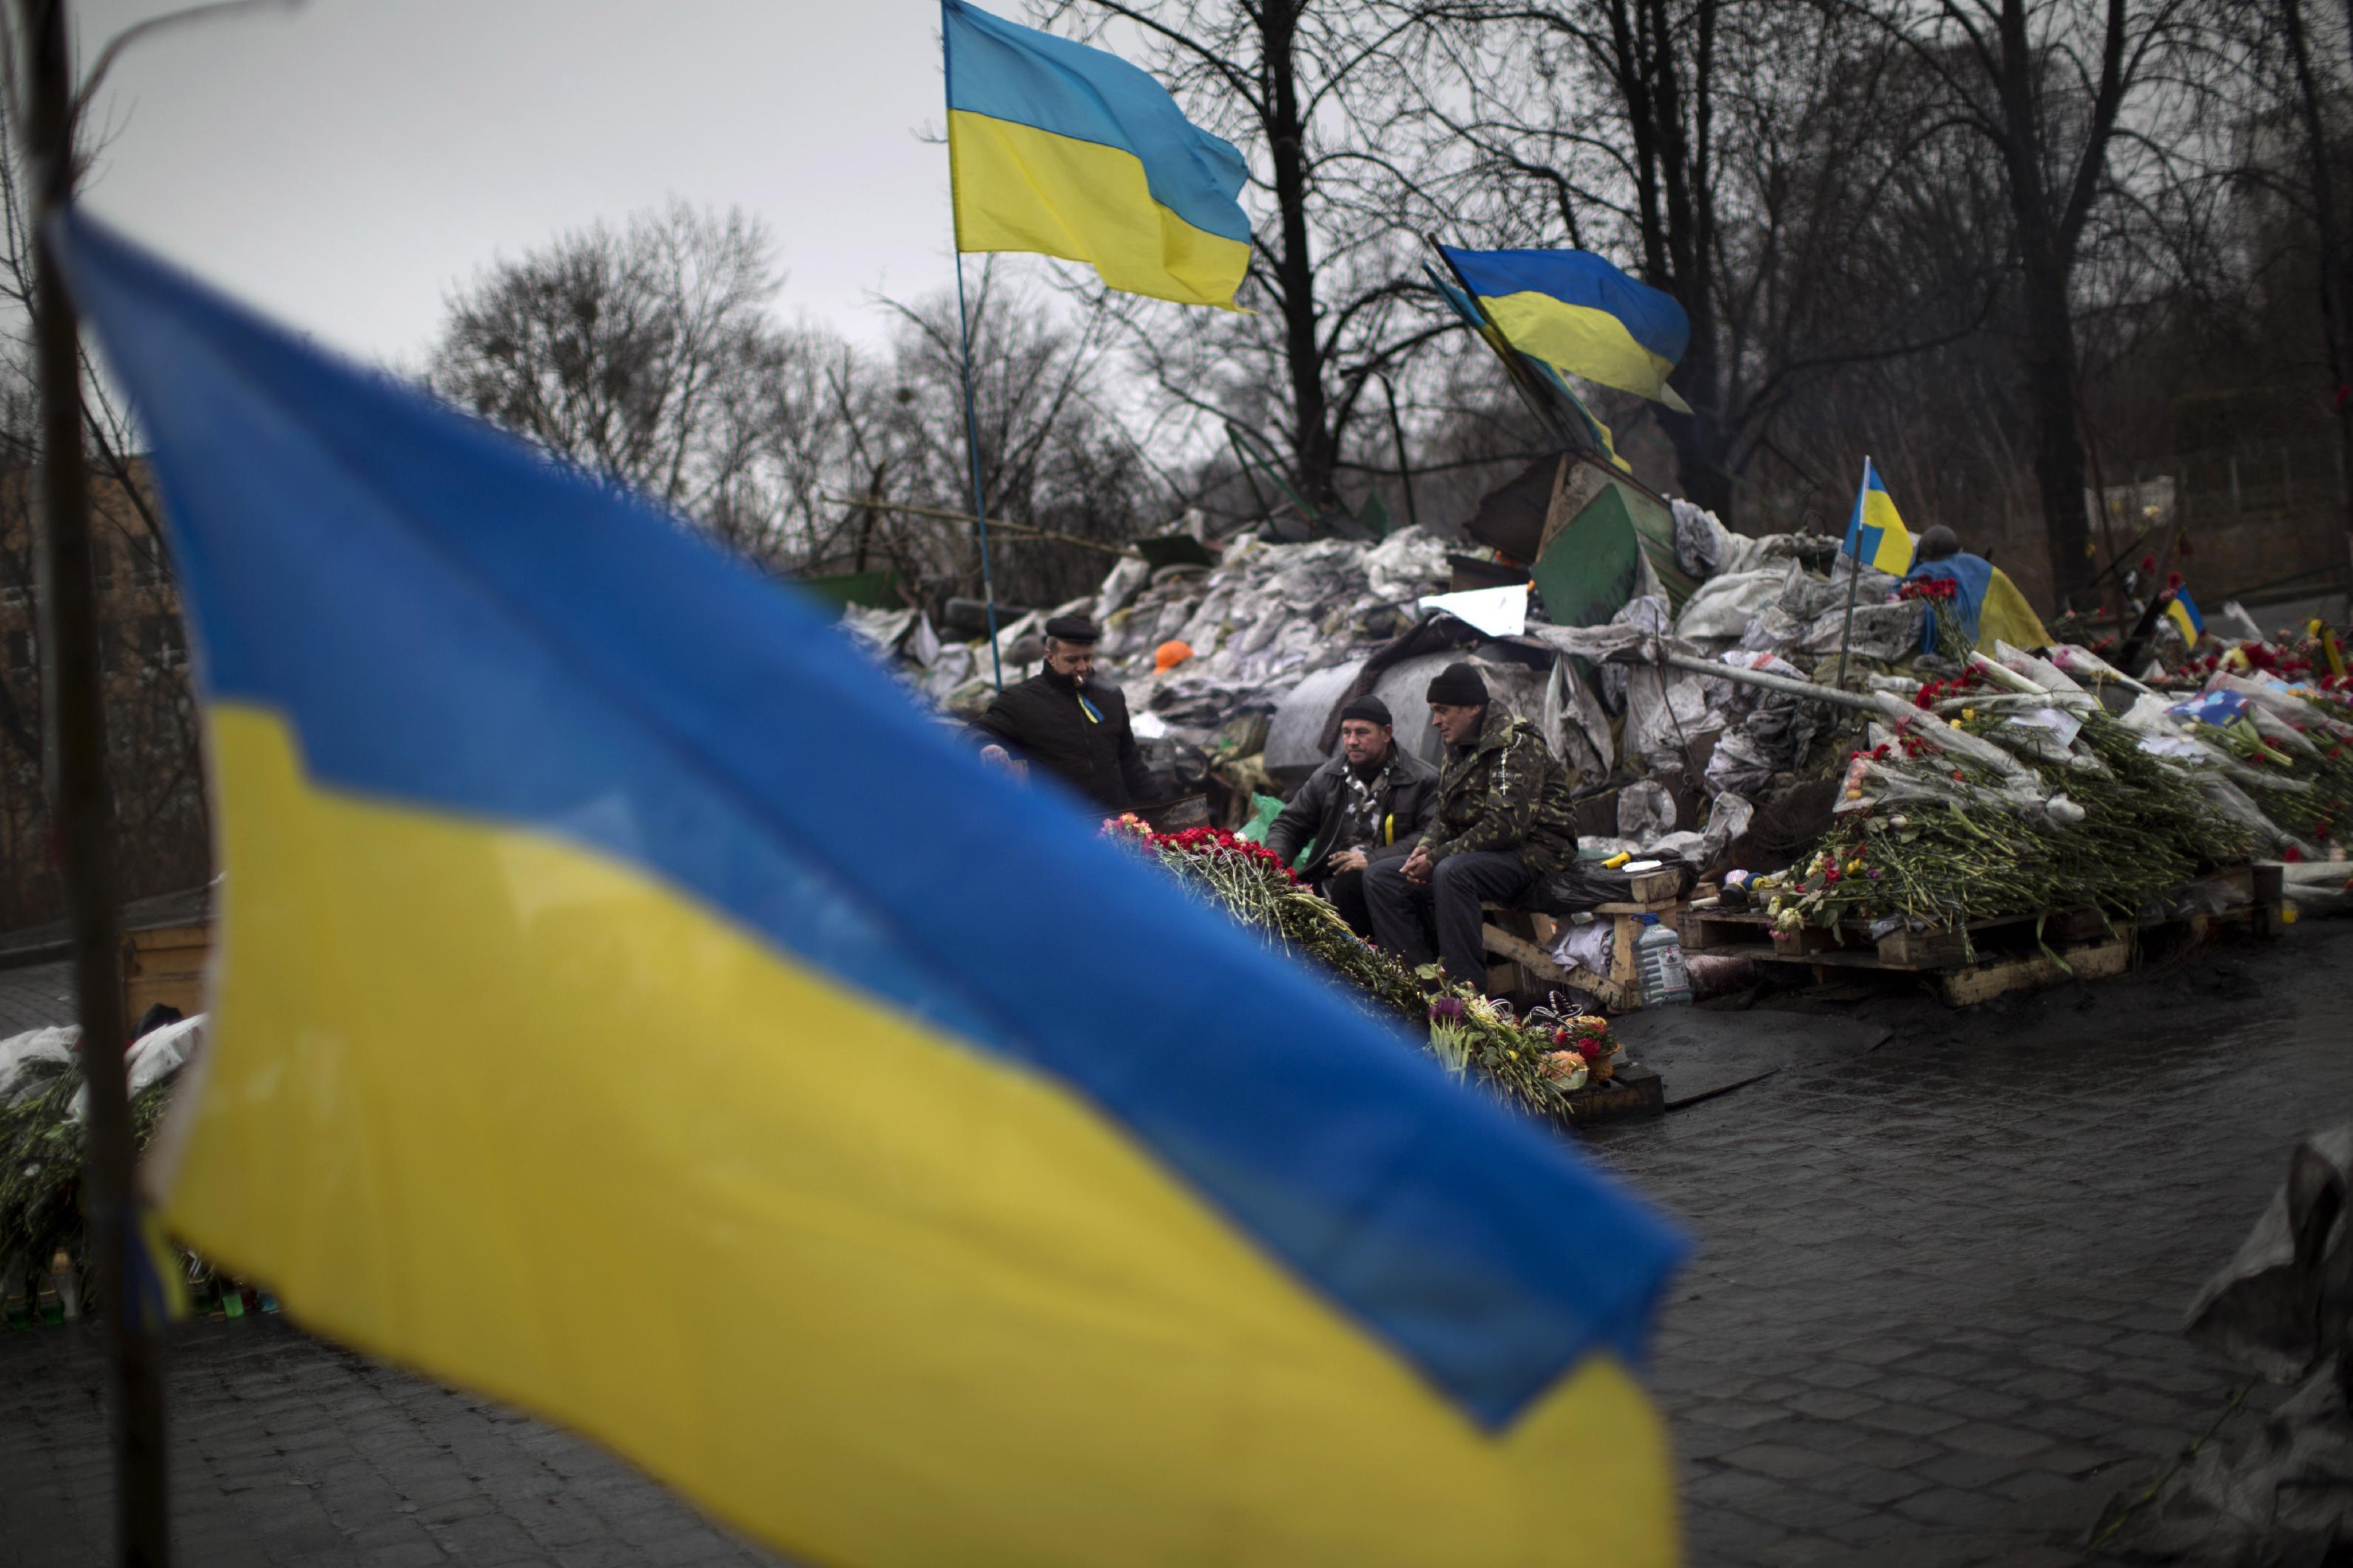 "Anti-Yanukovych protesters guard a barricade on a street heading to Kiev's Independence Square, in Ukraine, Wednesday, March 5, 2014. Stepping back from the brink of war, Vladimir Putin talked tough but cooled tensions in the Ukraine crisis Tuesday, saying Russia has no intention ""to fight the Ukrainian people"" but reserves the right to use force. As the Russian president held court in his personal residence, U.S. Secretary of State John Kerry met with Kiev's fledgling government and urged Putin to stand down. (AP Photo/Emilio Morenatti)"